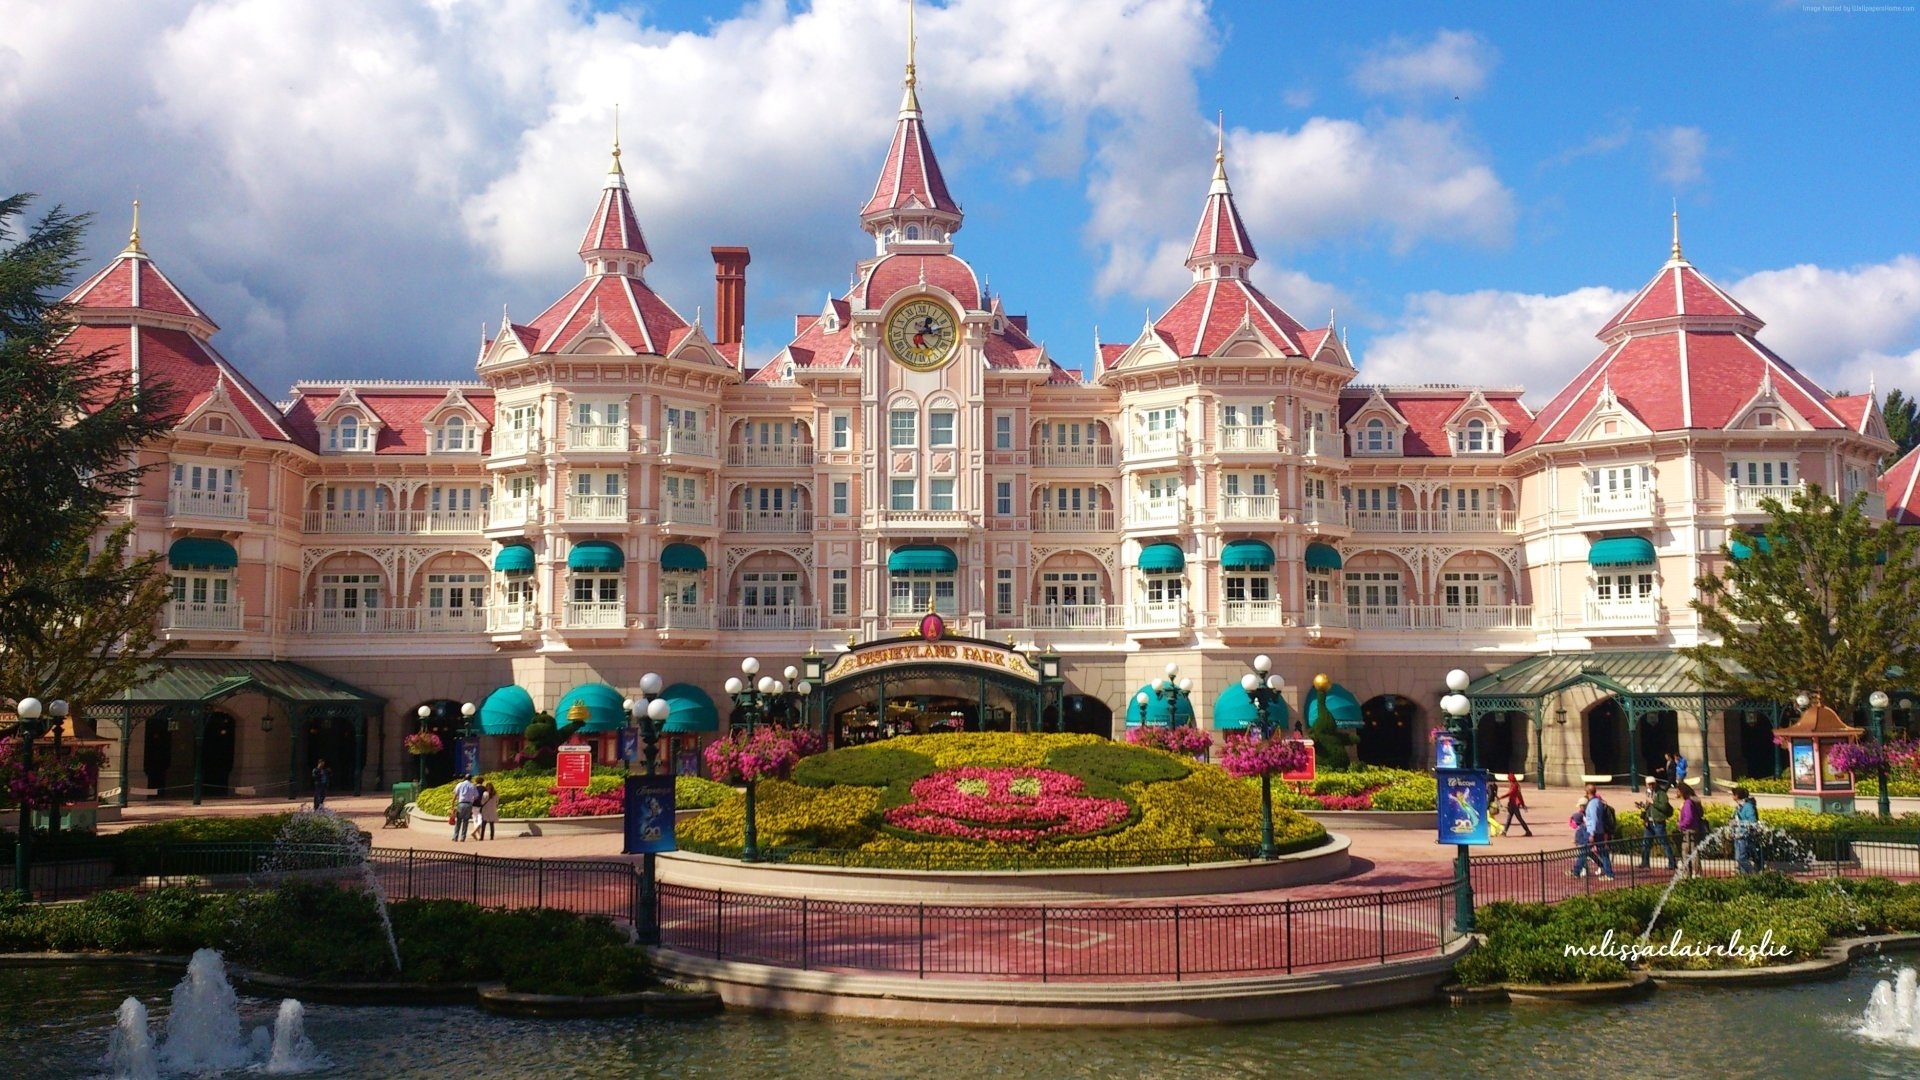 Disneyland hotel in paris france 4k ultra hd wallpaper for Hotels in france